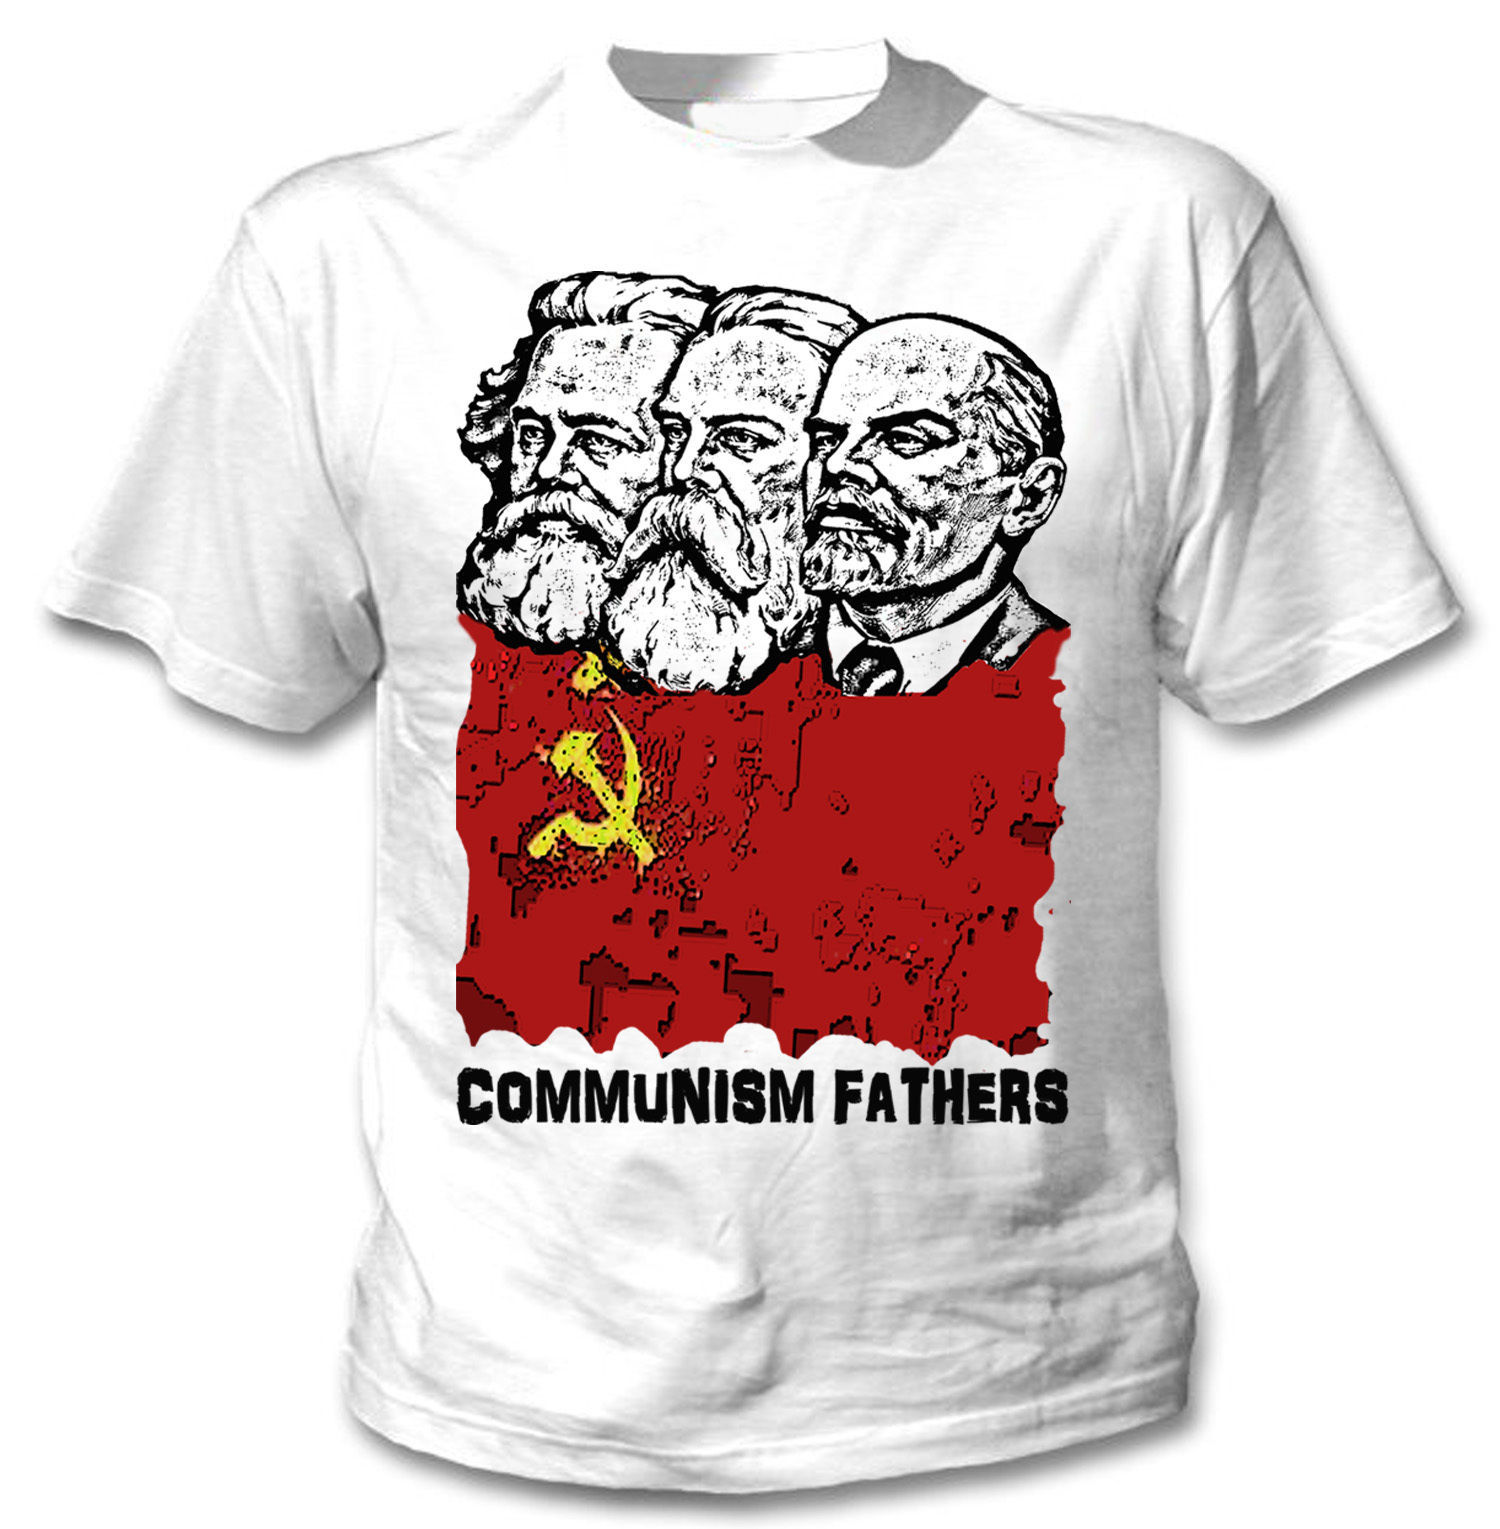 Primary image for COMMUNISM FATHERS  - NEW AMAZING GRAPHIC TSHIRT- S-M-L-XL-XXL